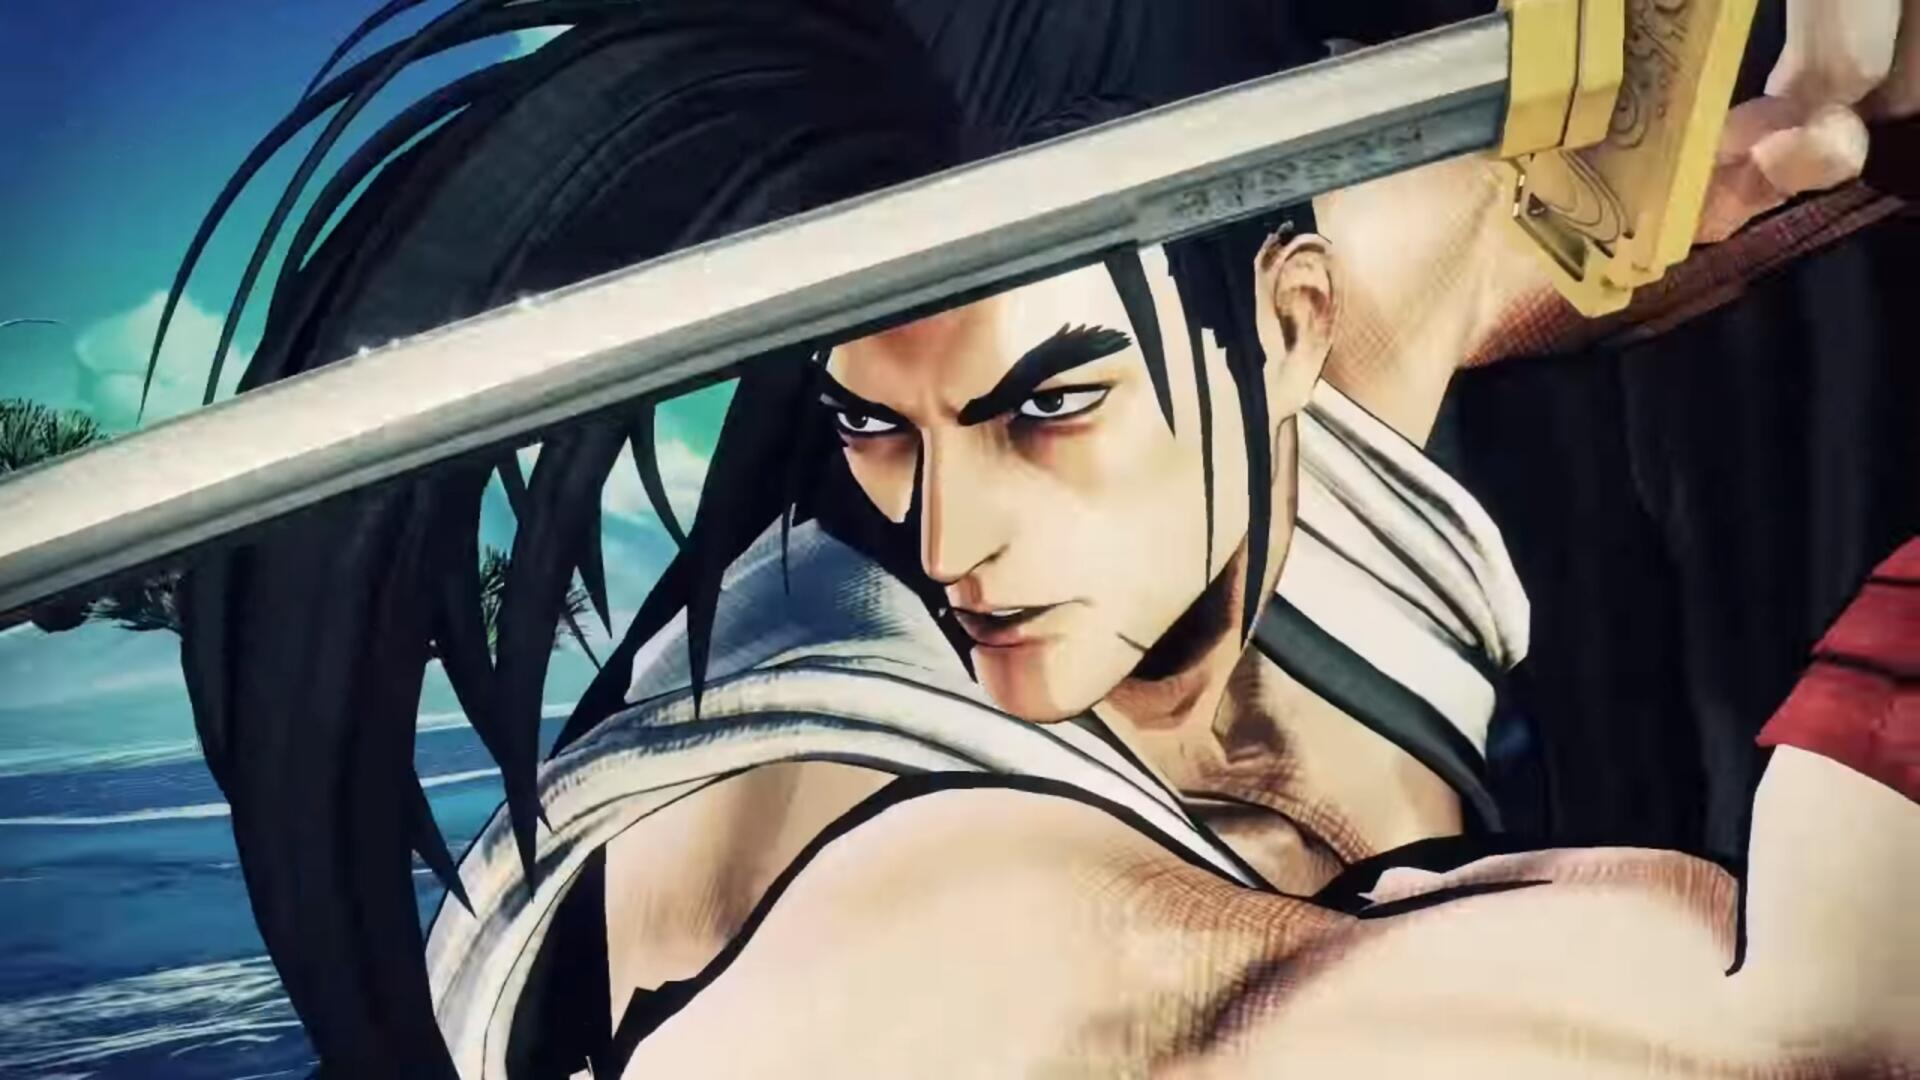 Samurai Shodown Release Date Confirmed Alongside Free Season Pass for Early Adopters